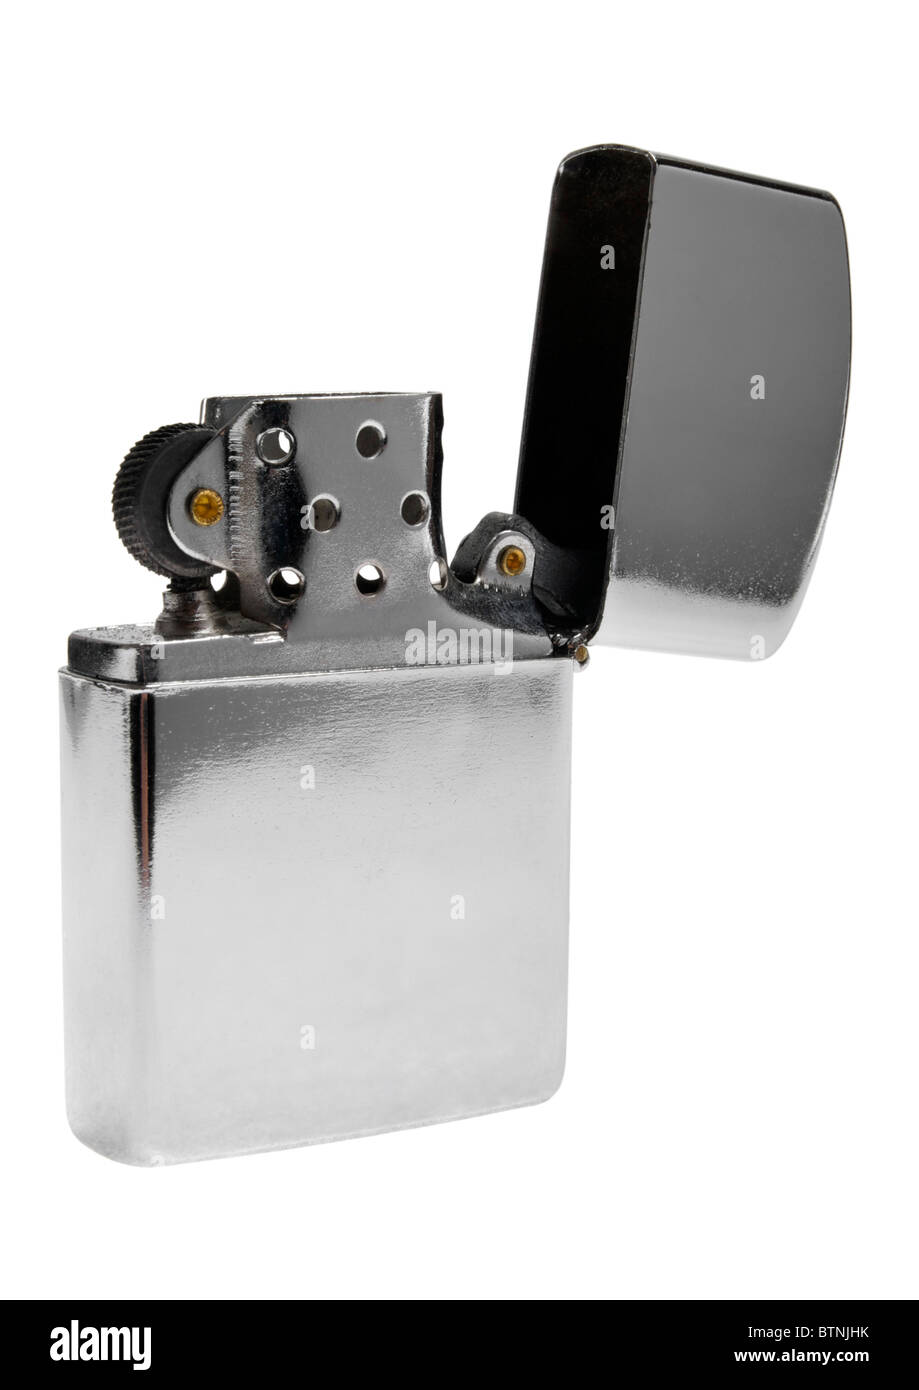 Zippo lighter on white background Stock Photo